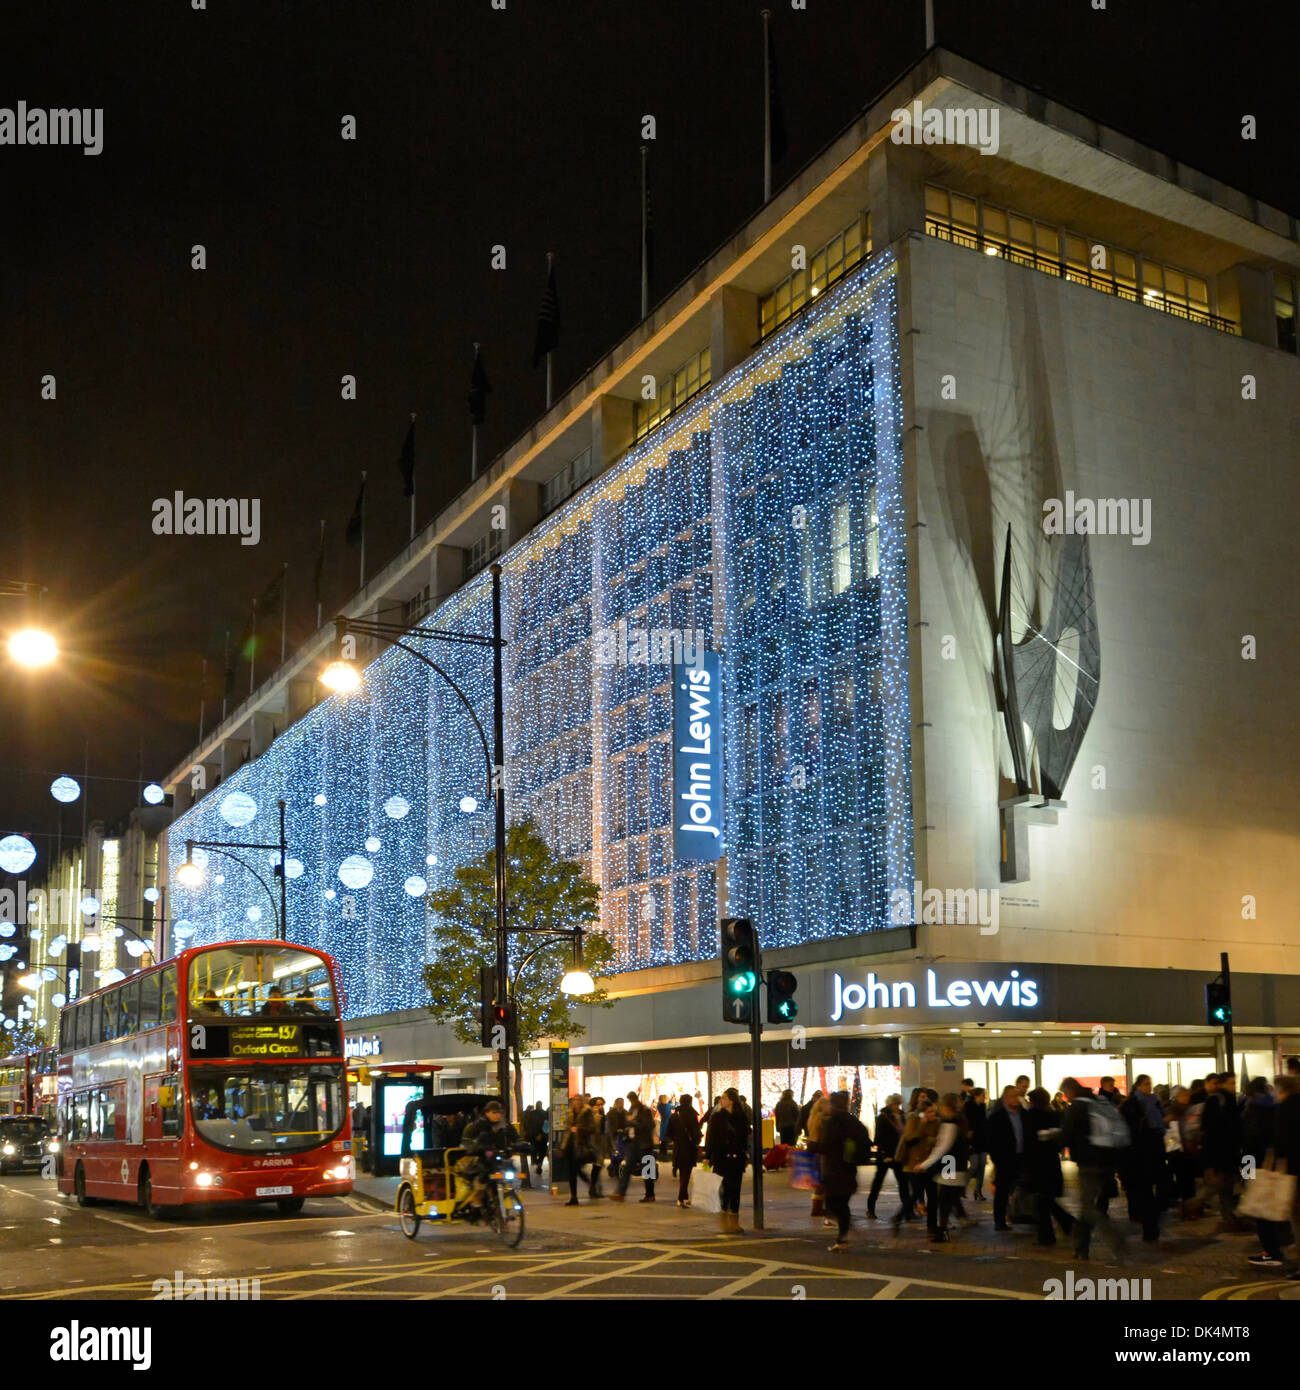 john lewis department store in oxford street with christmas lights and barbara hepworth sculpture winged